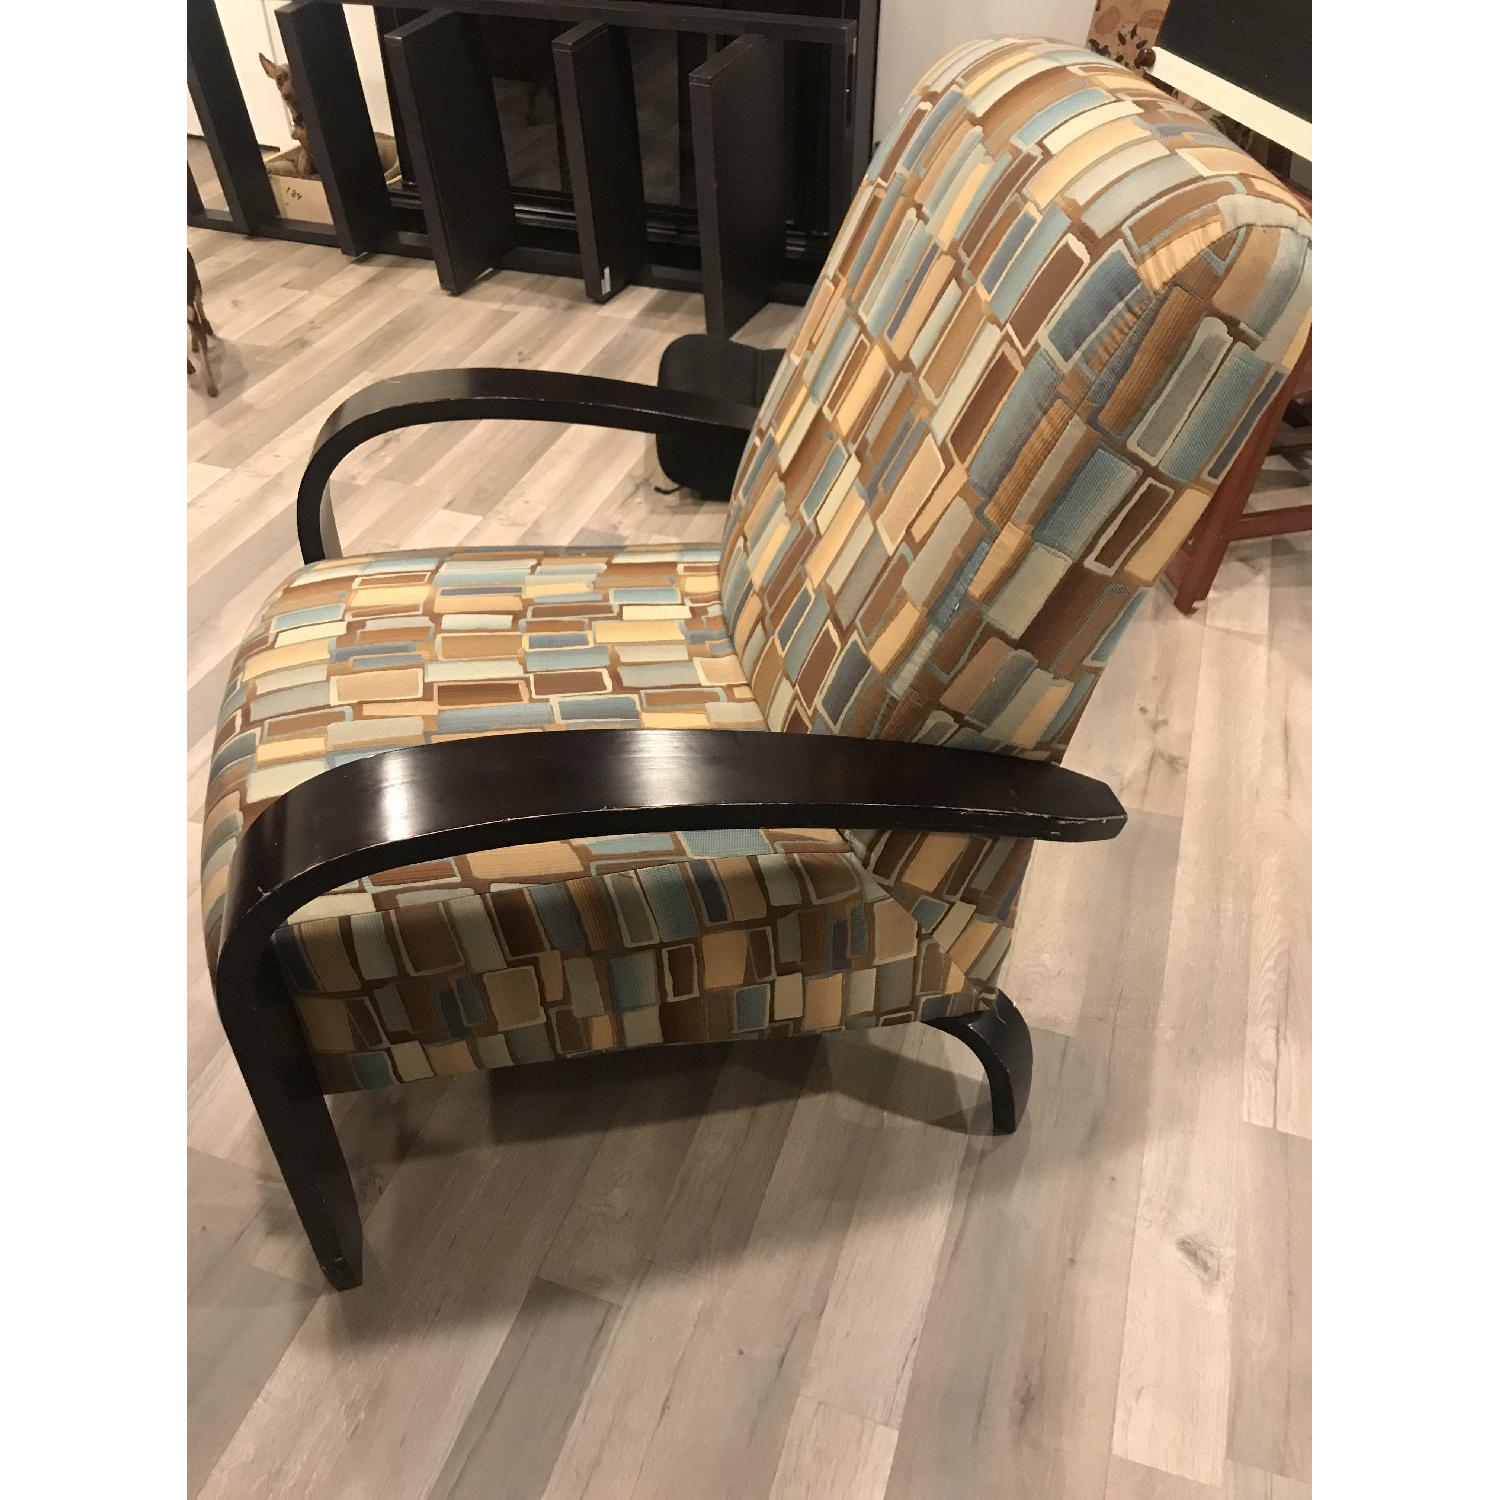 Wood & Fabric Upholstered Chairs - image-8